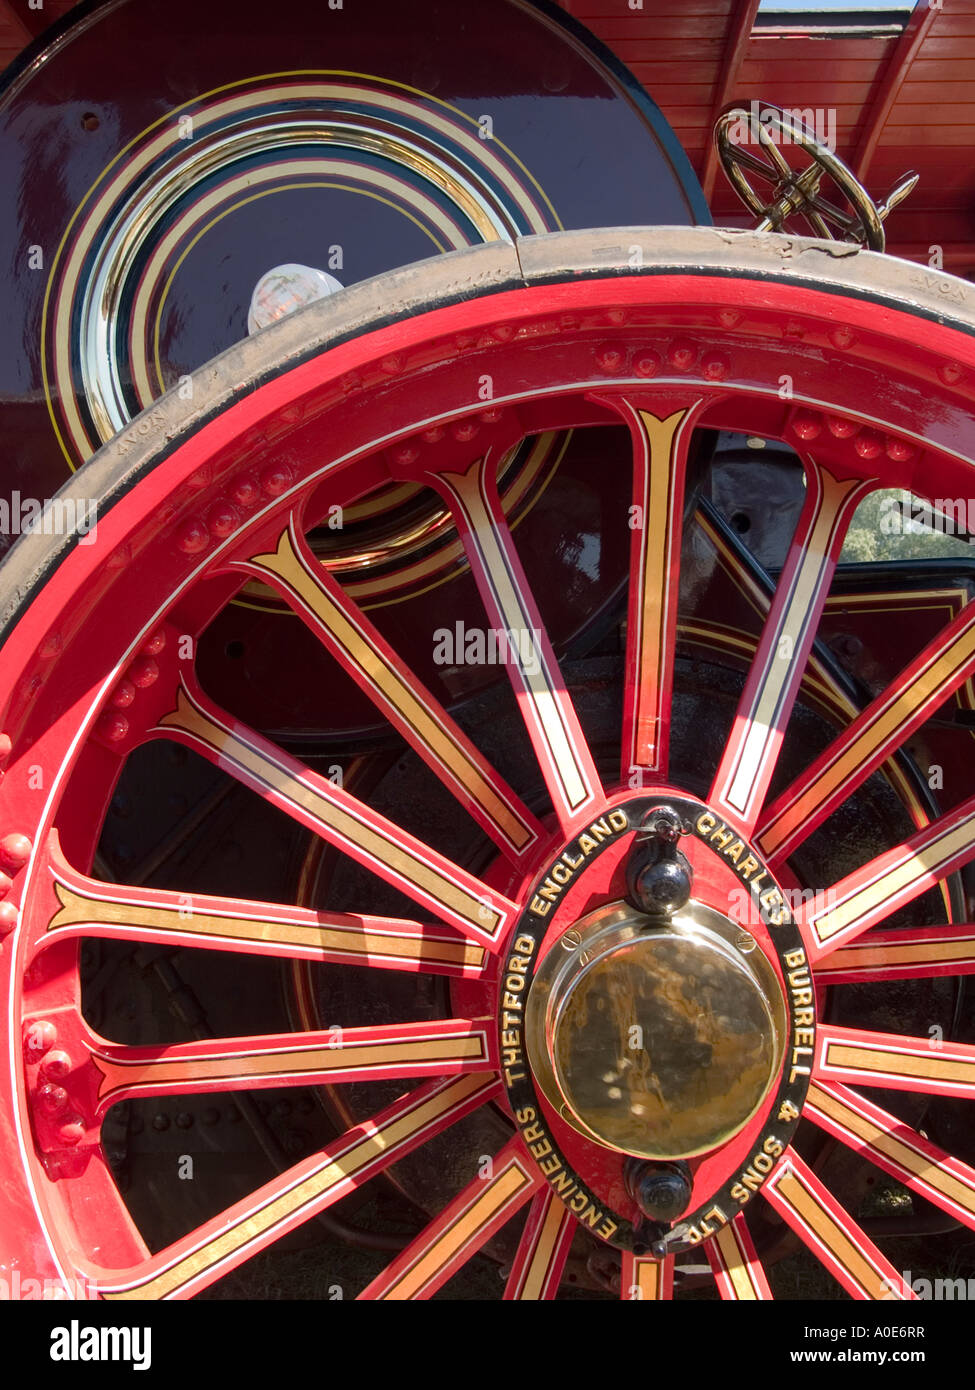 A restored traction engine wheel at Welland Steam Fair Worcestershire - Stock Image